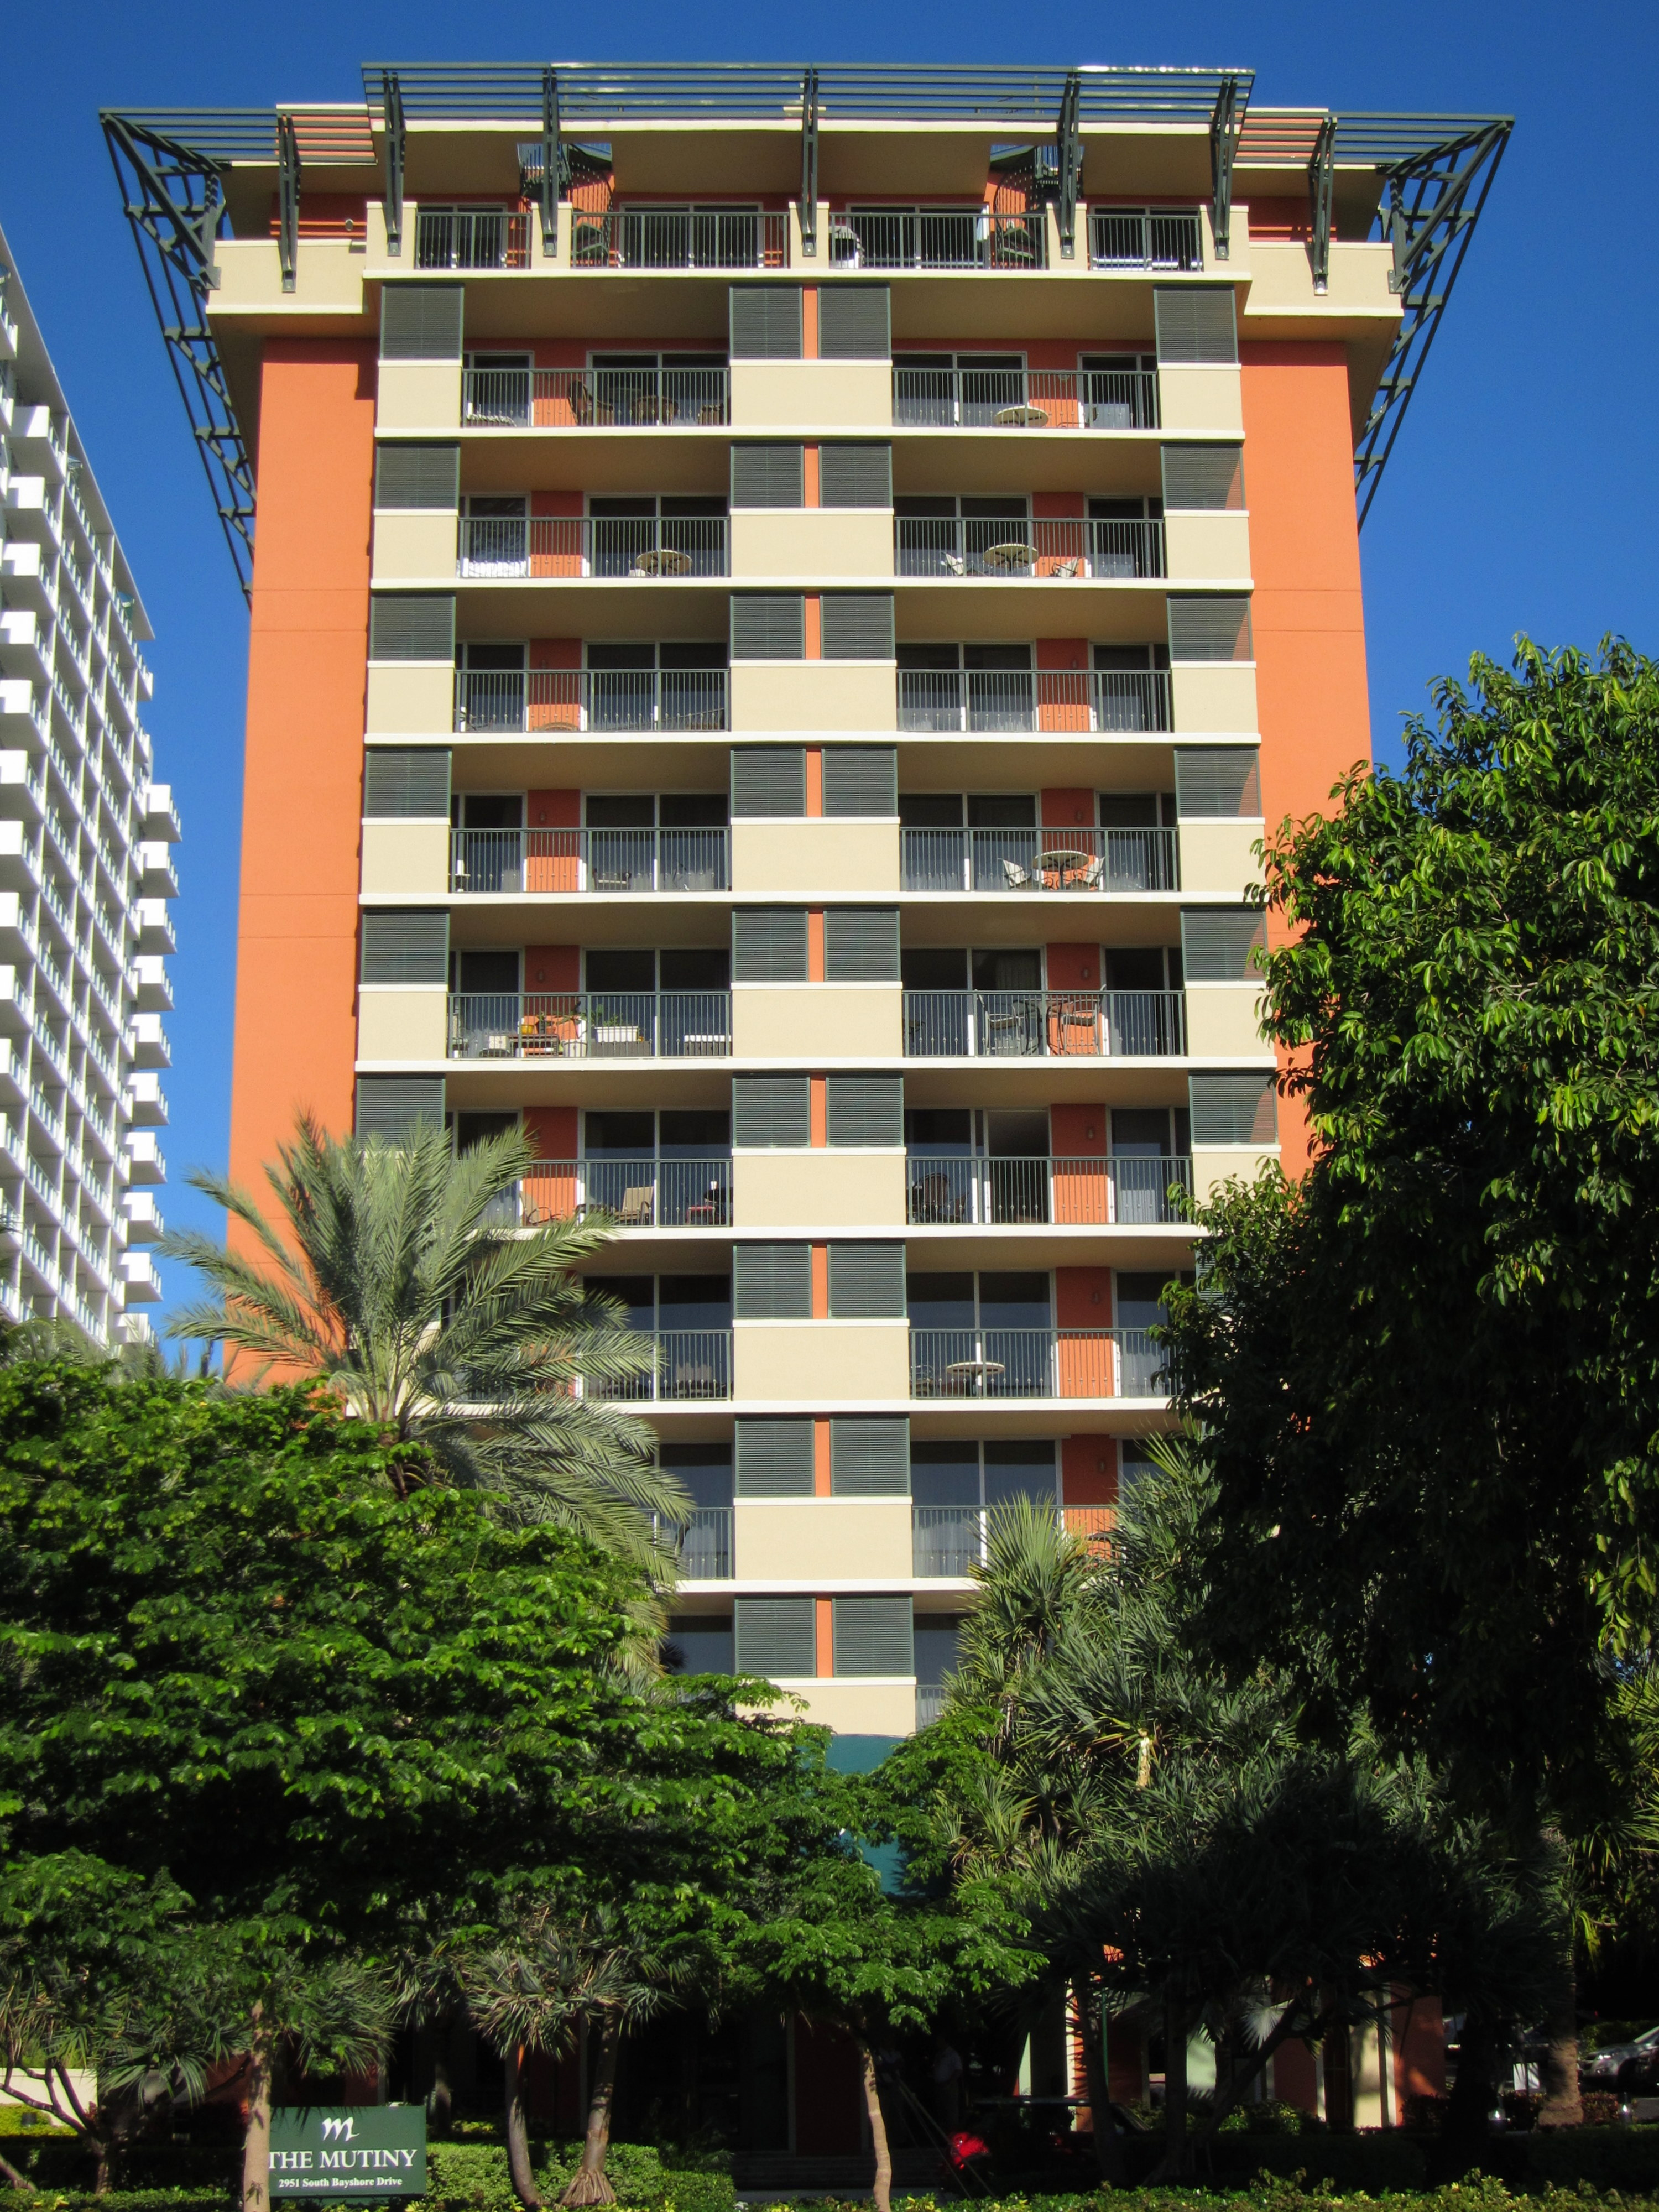 virginia miami deco gardens central henry cheap in blog by park garden the architecture art hotel hotels duran best of